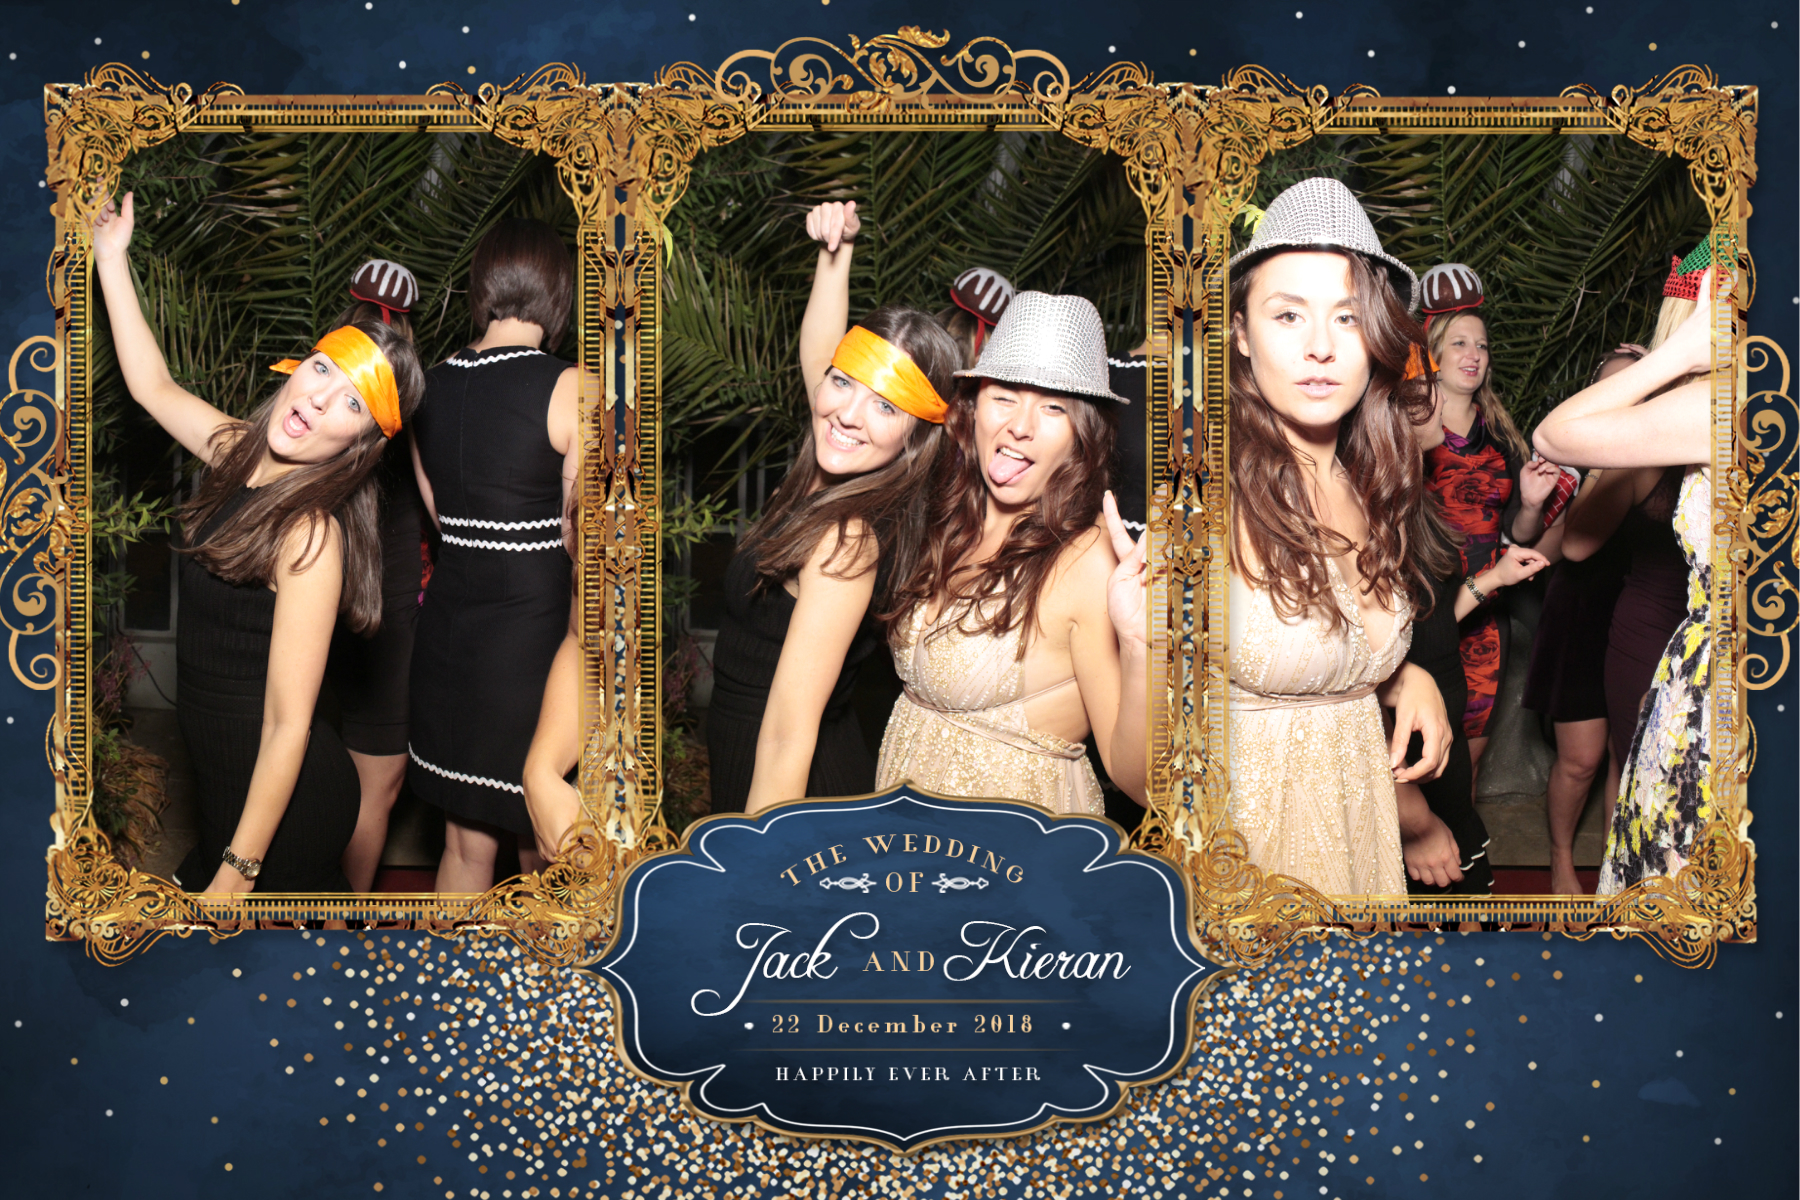 Jack and Kieran's Wedding | View more photos from the event at gallery.myphotoboothexperience.co.uk/u/MyPhotoBoothExperienceLtd/Jack-and-Kierans-Wedding